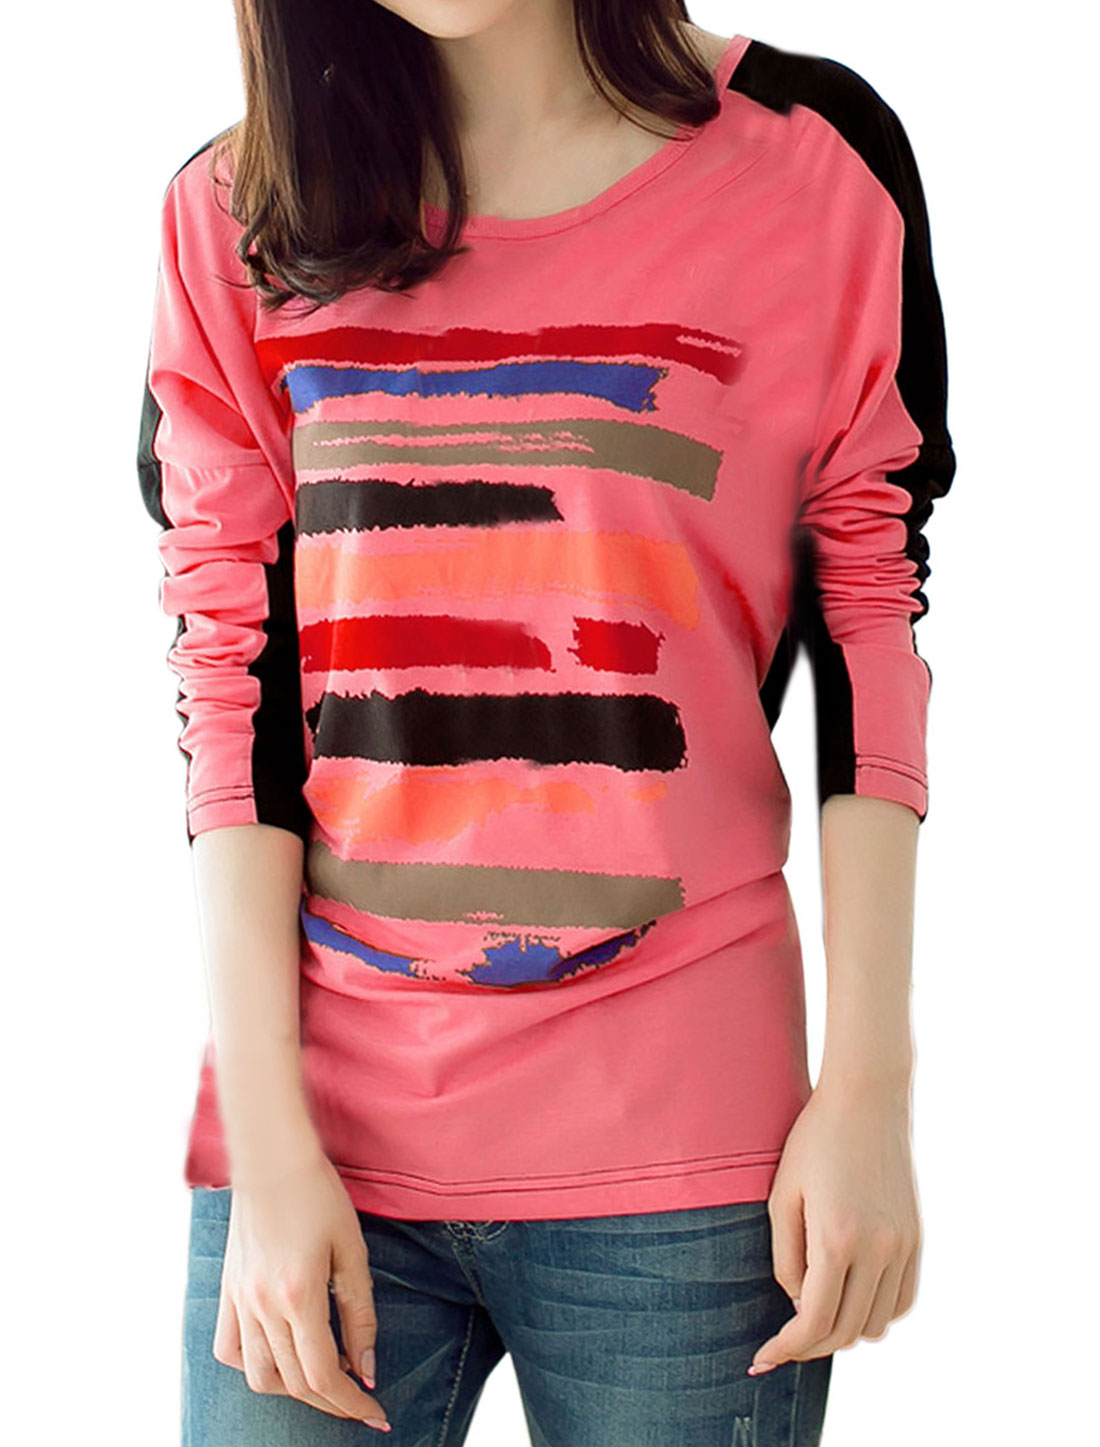 Lady Novelty Pattern Color Block Loose T-shirt Light Coral Black L